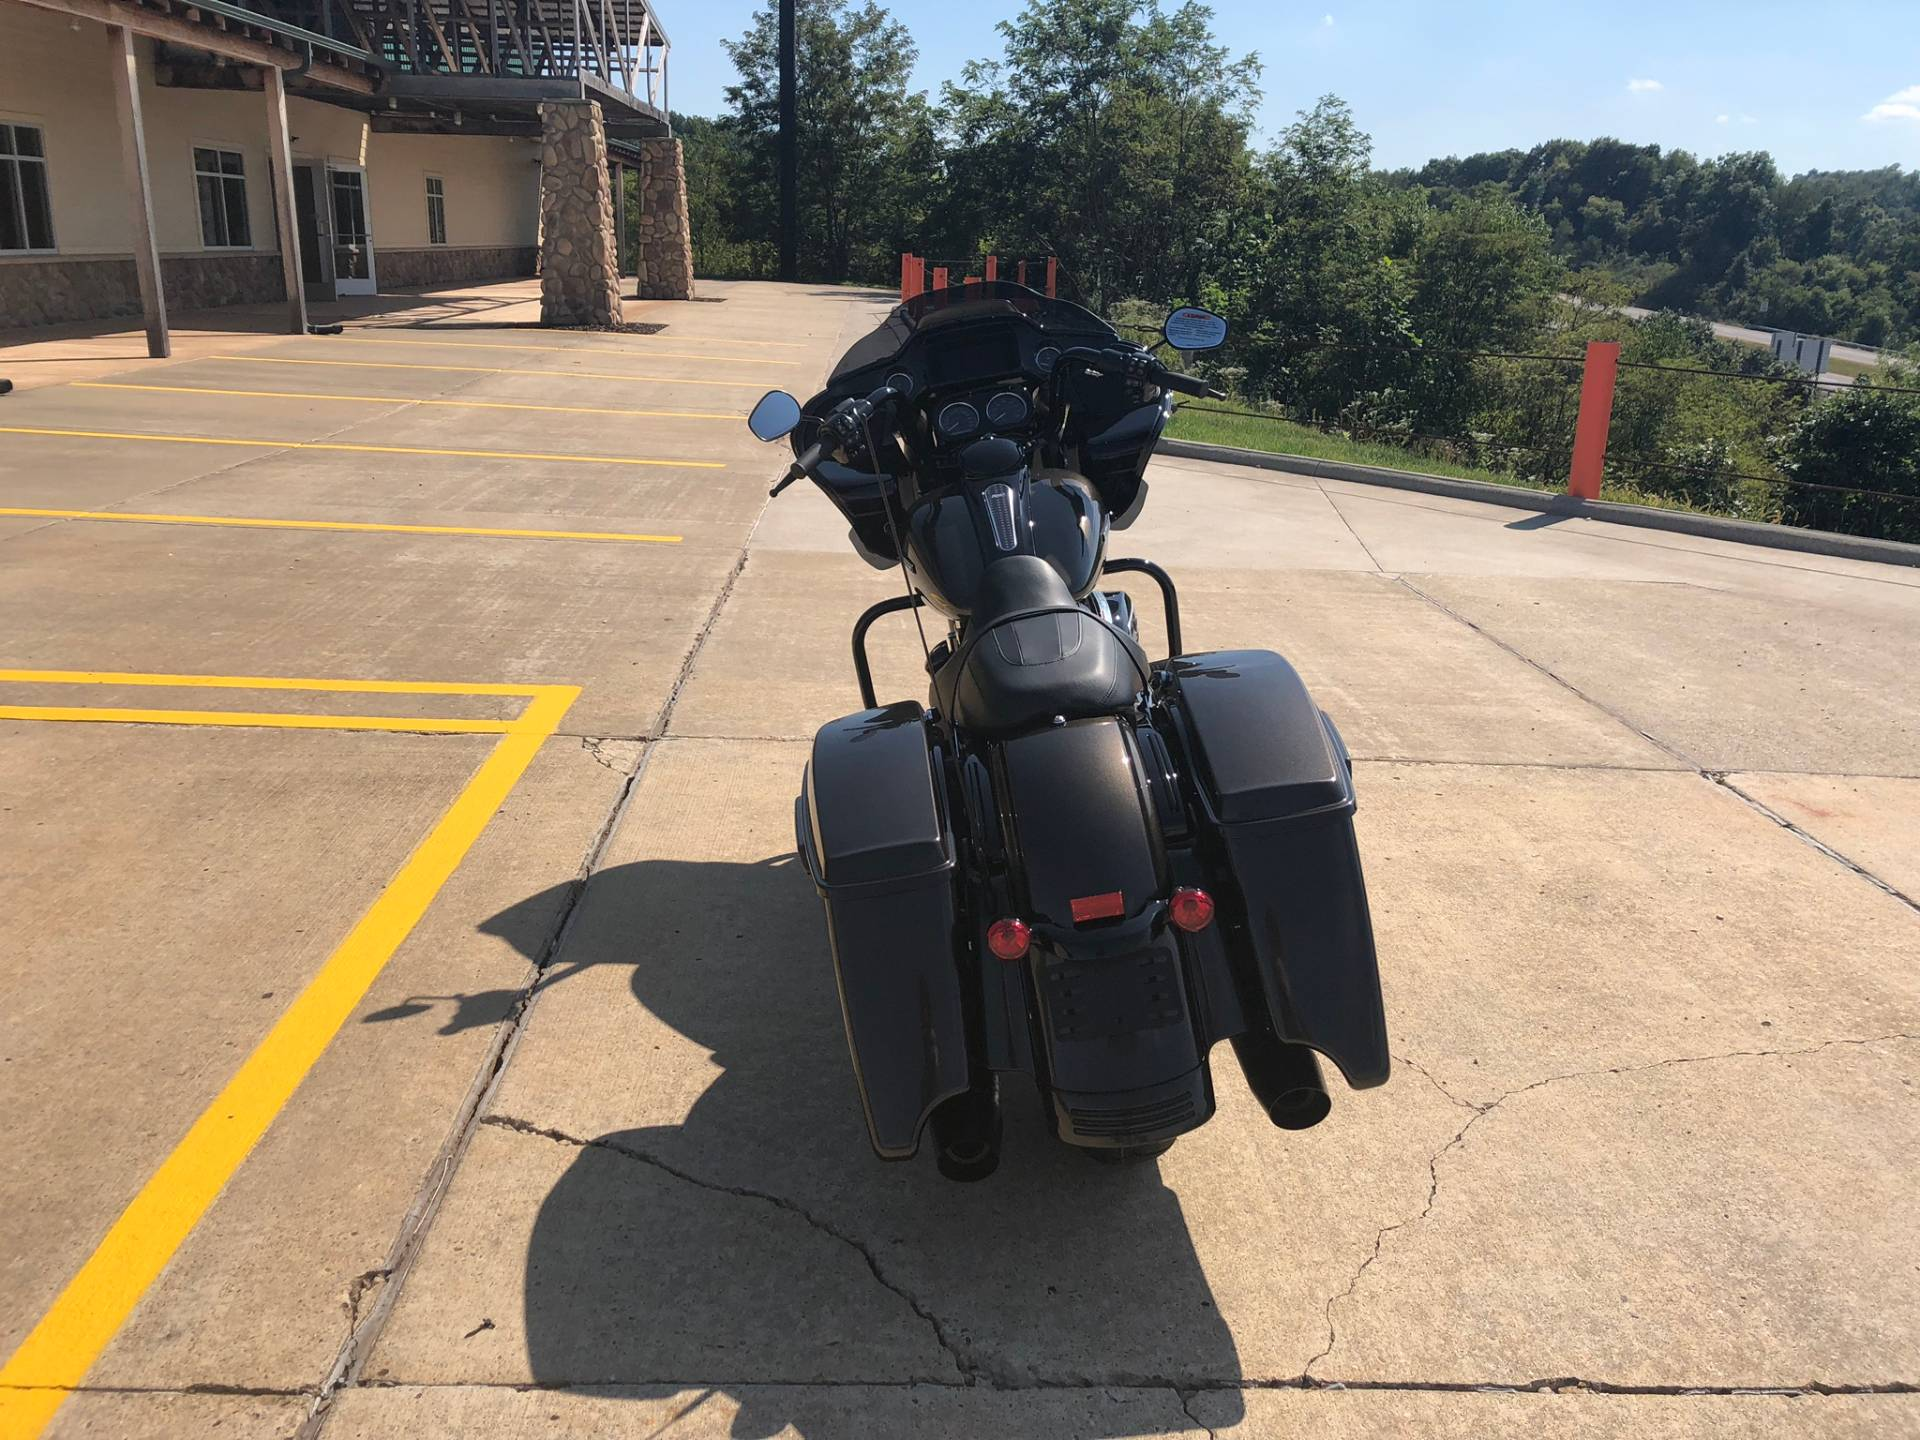 2020 Harley-Davidson Road Glide Special in Williamstown, West Virginia - Photo 7